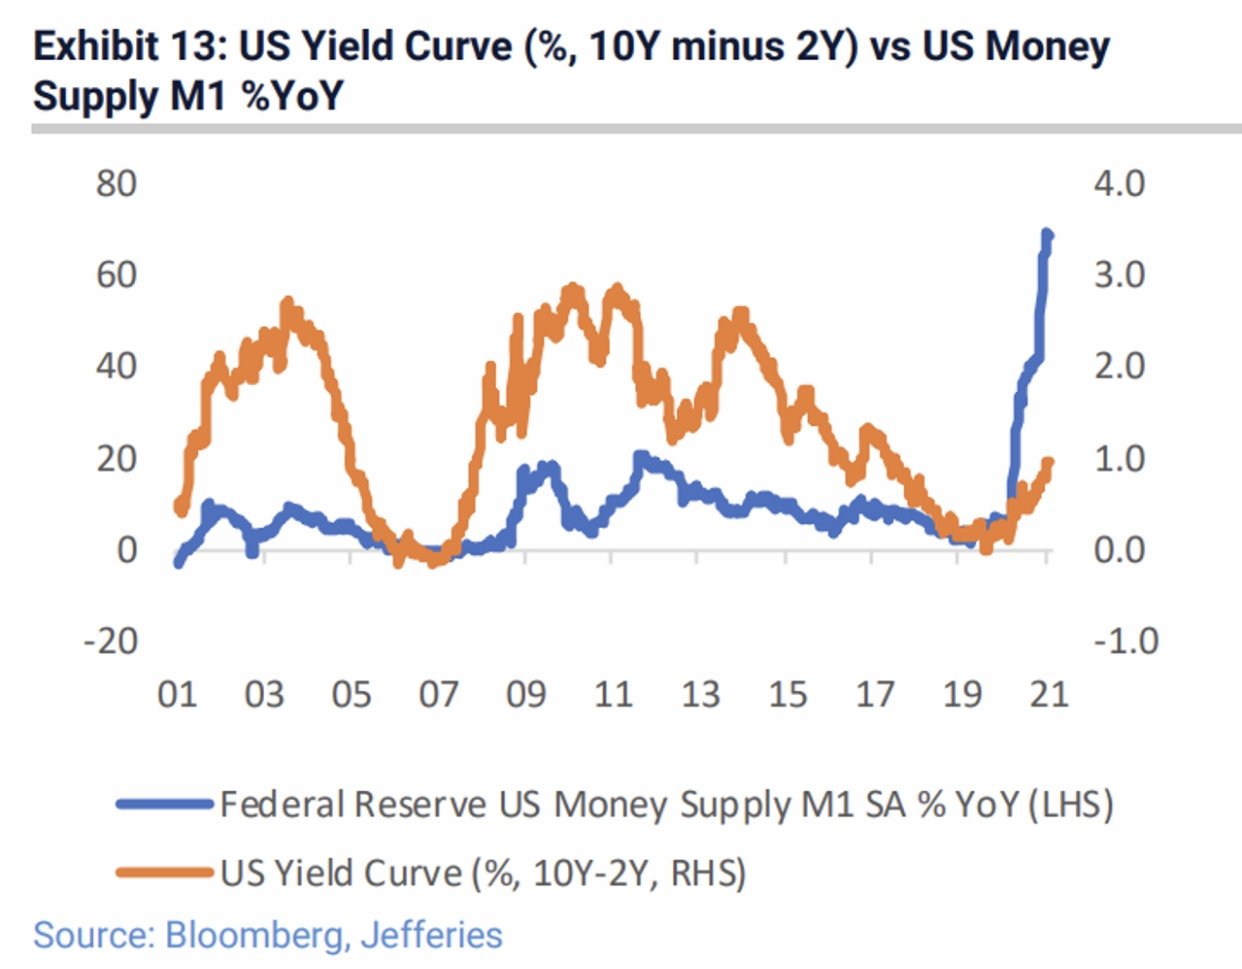 U.S. yield curve steepening with rising interest rates